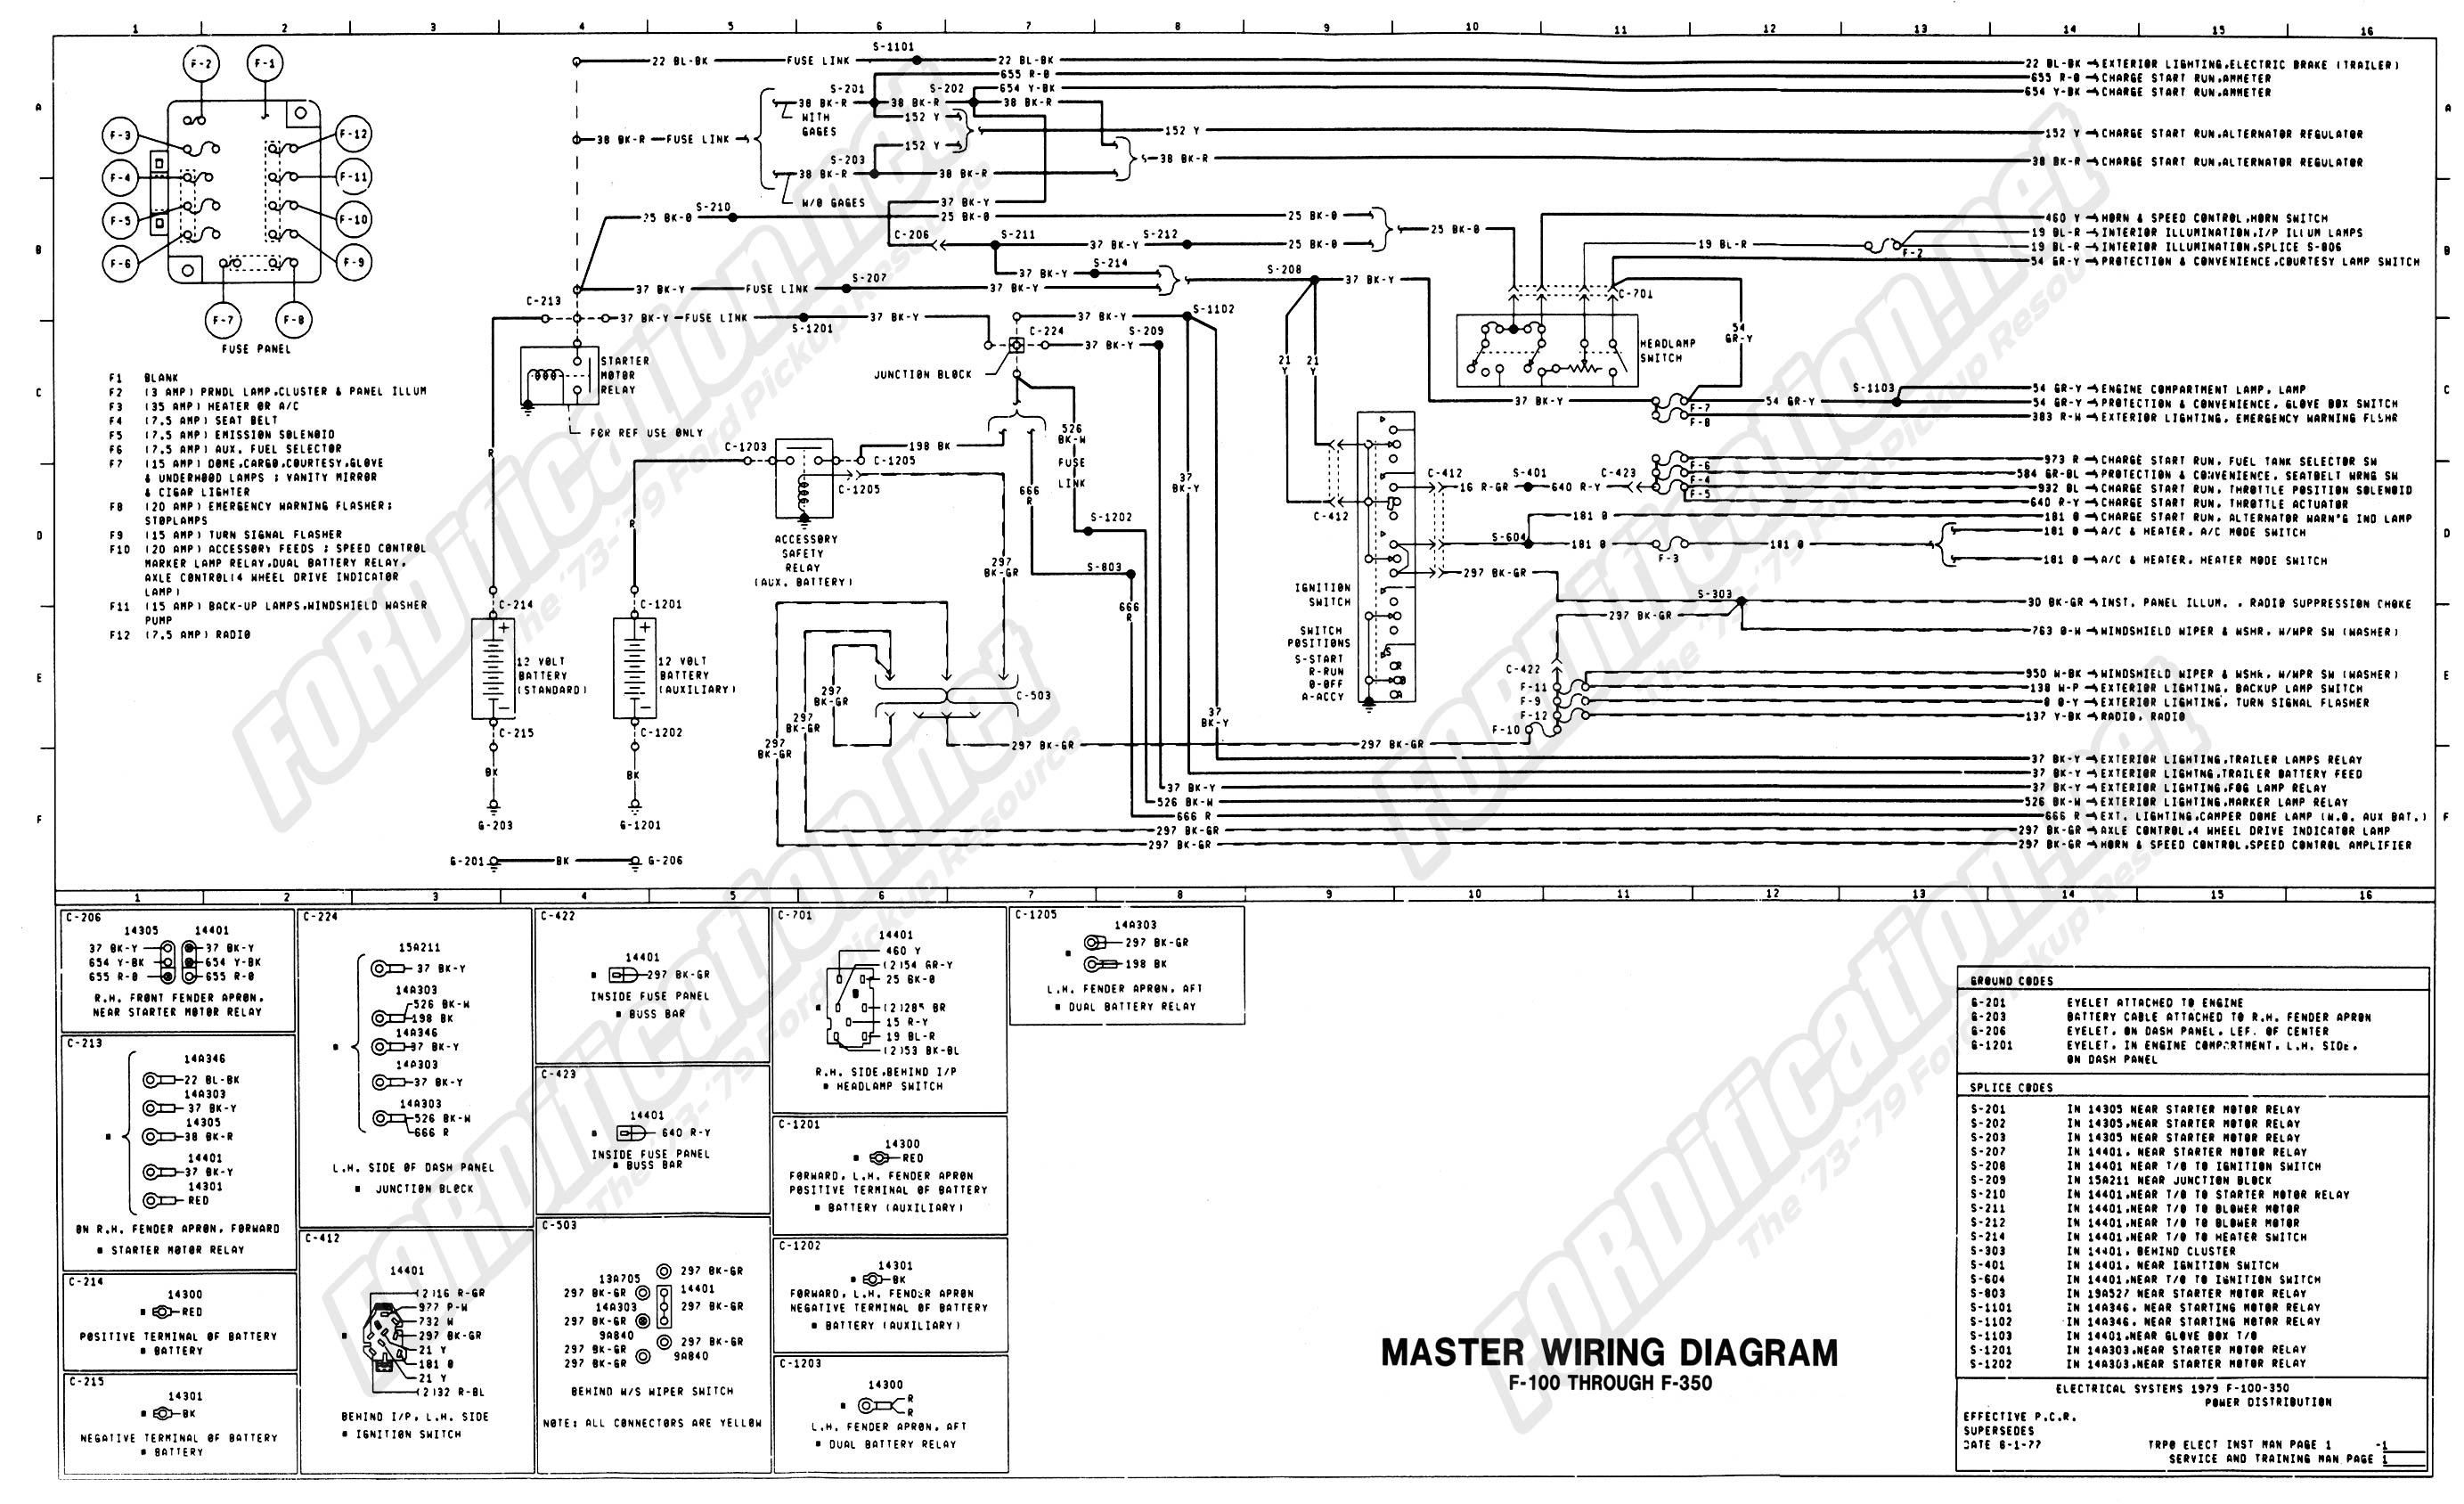 1972 ford f100 ignition switch wiring diagram pop up camper 1973 1979 truck diagrams and schematics